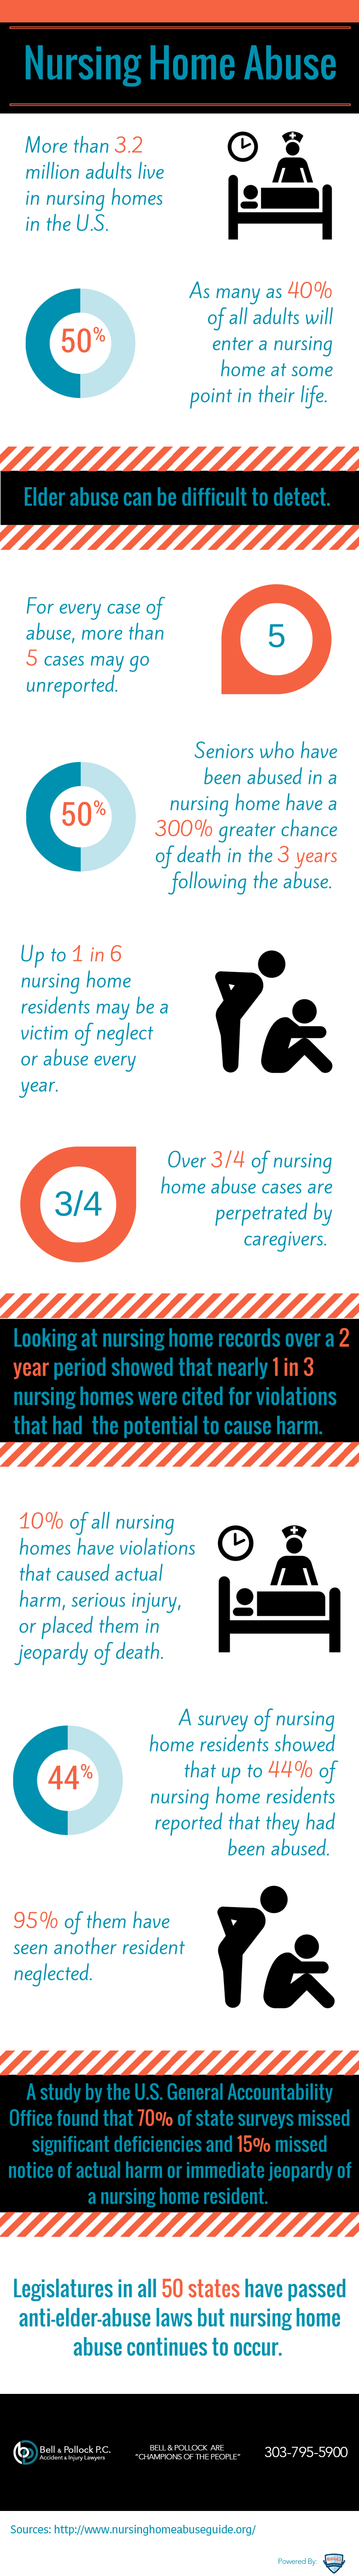 A Look a the Nursing Home Abuse Epidemic in the U.S. [Infographic]